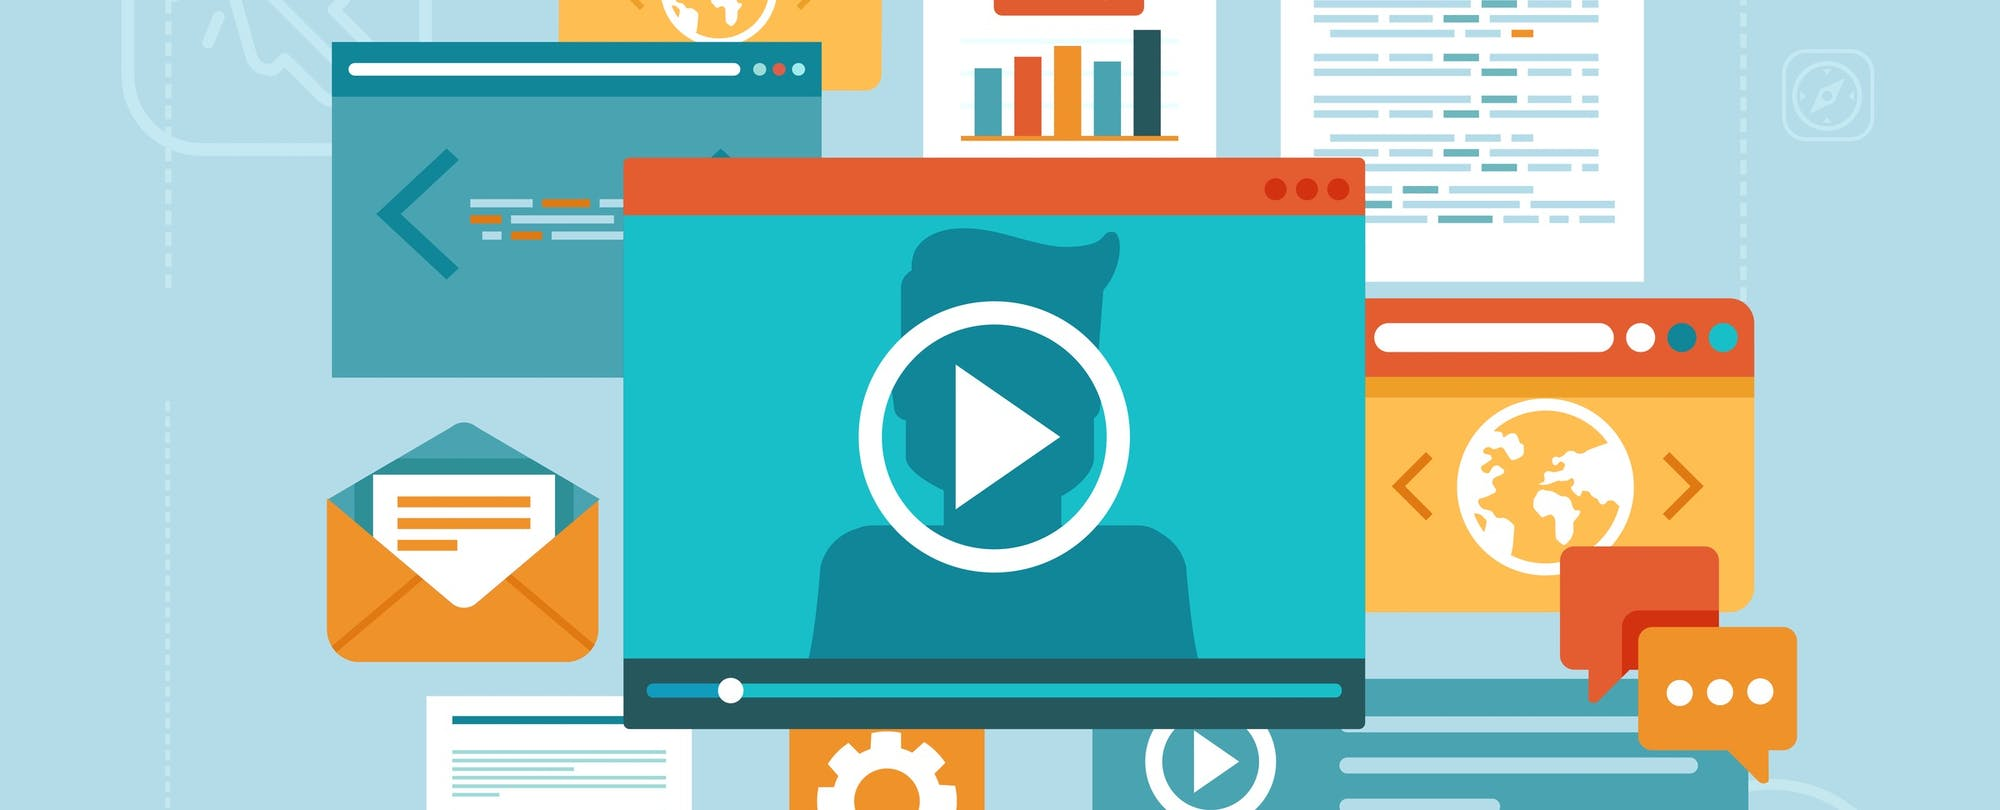 #DLNchat: How Can Video Best Support Learning and Instruction?